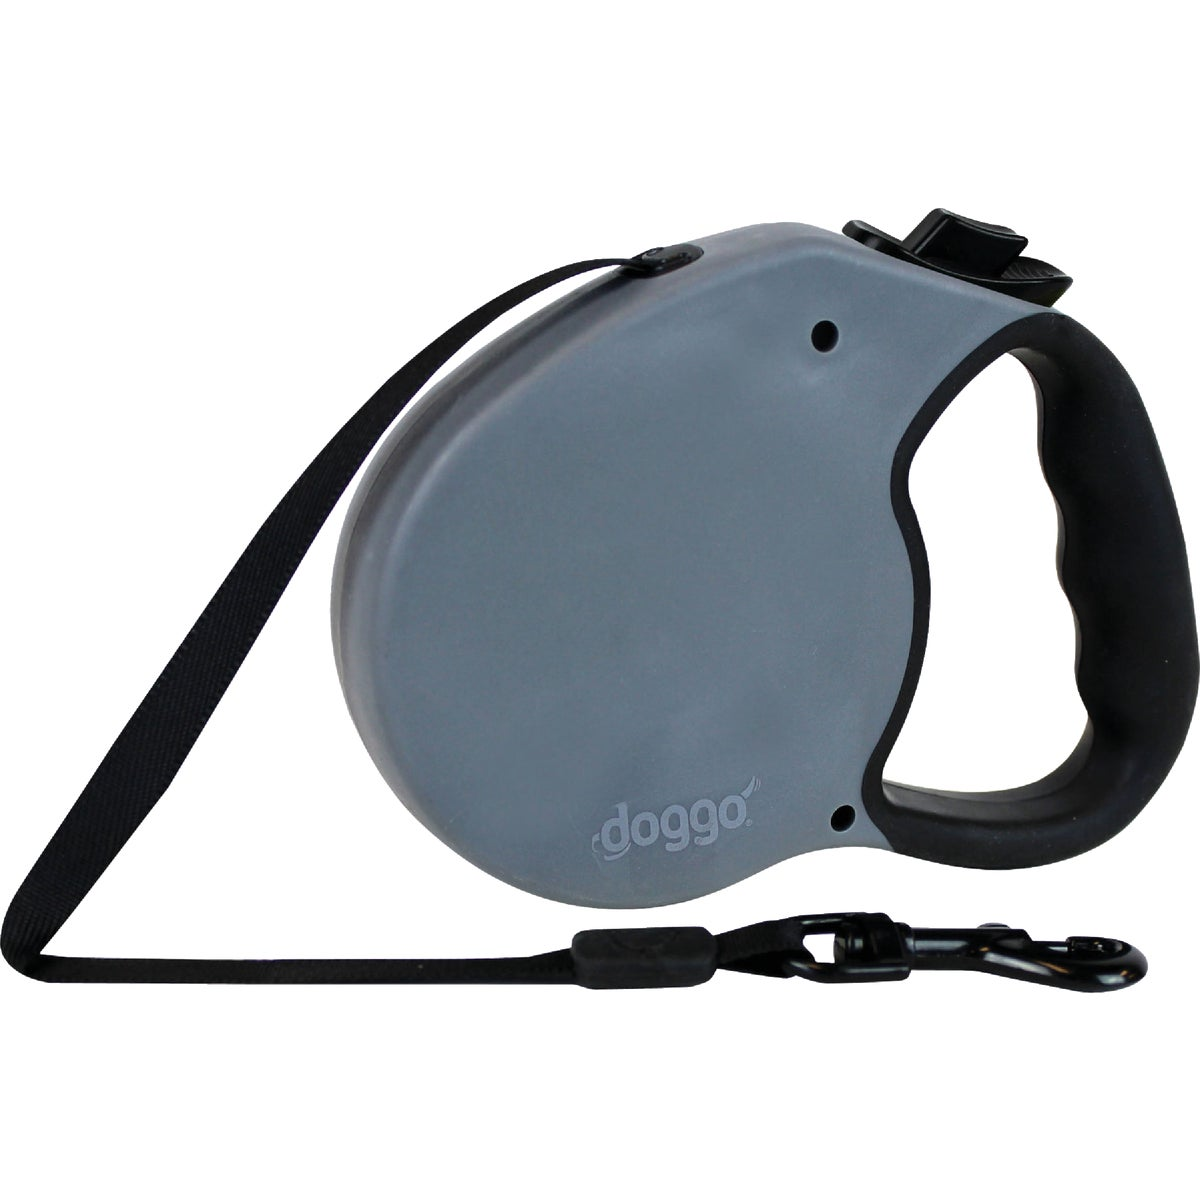 LG BLK RETRACTABLE LEASH